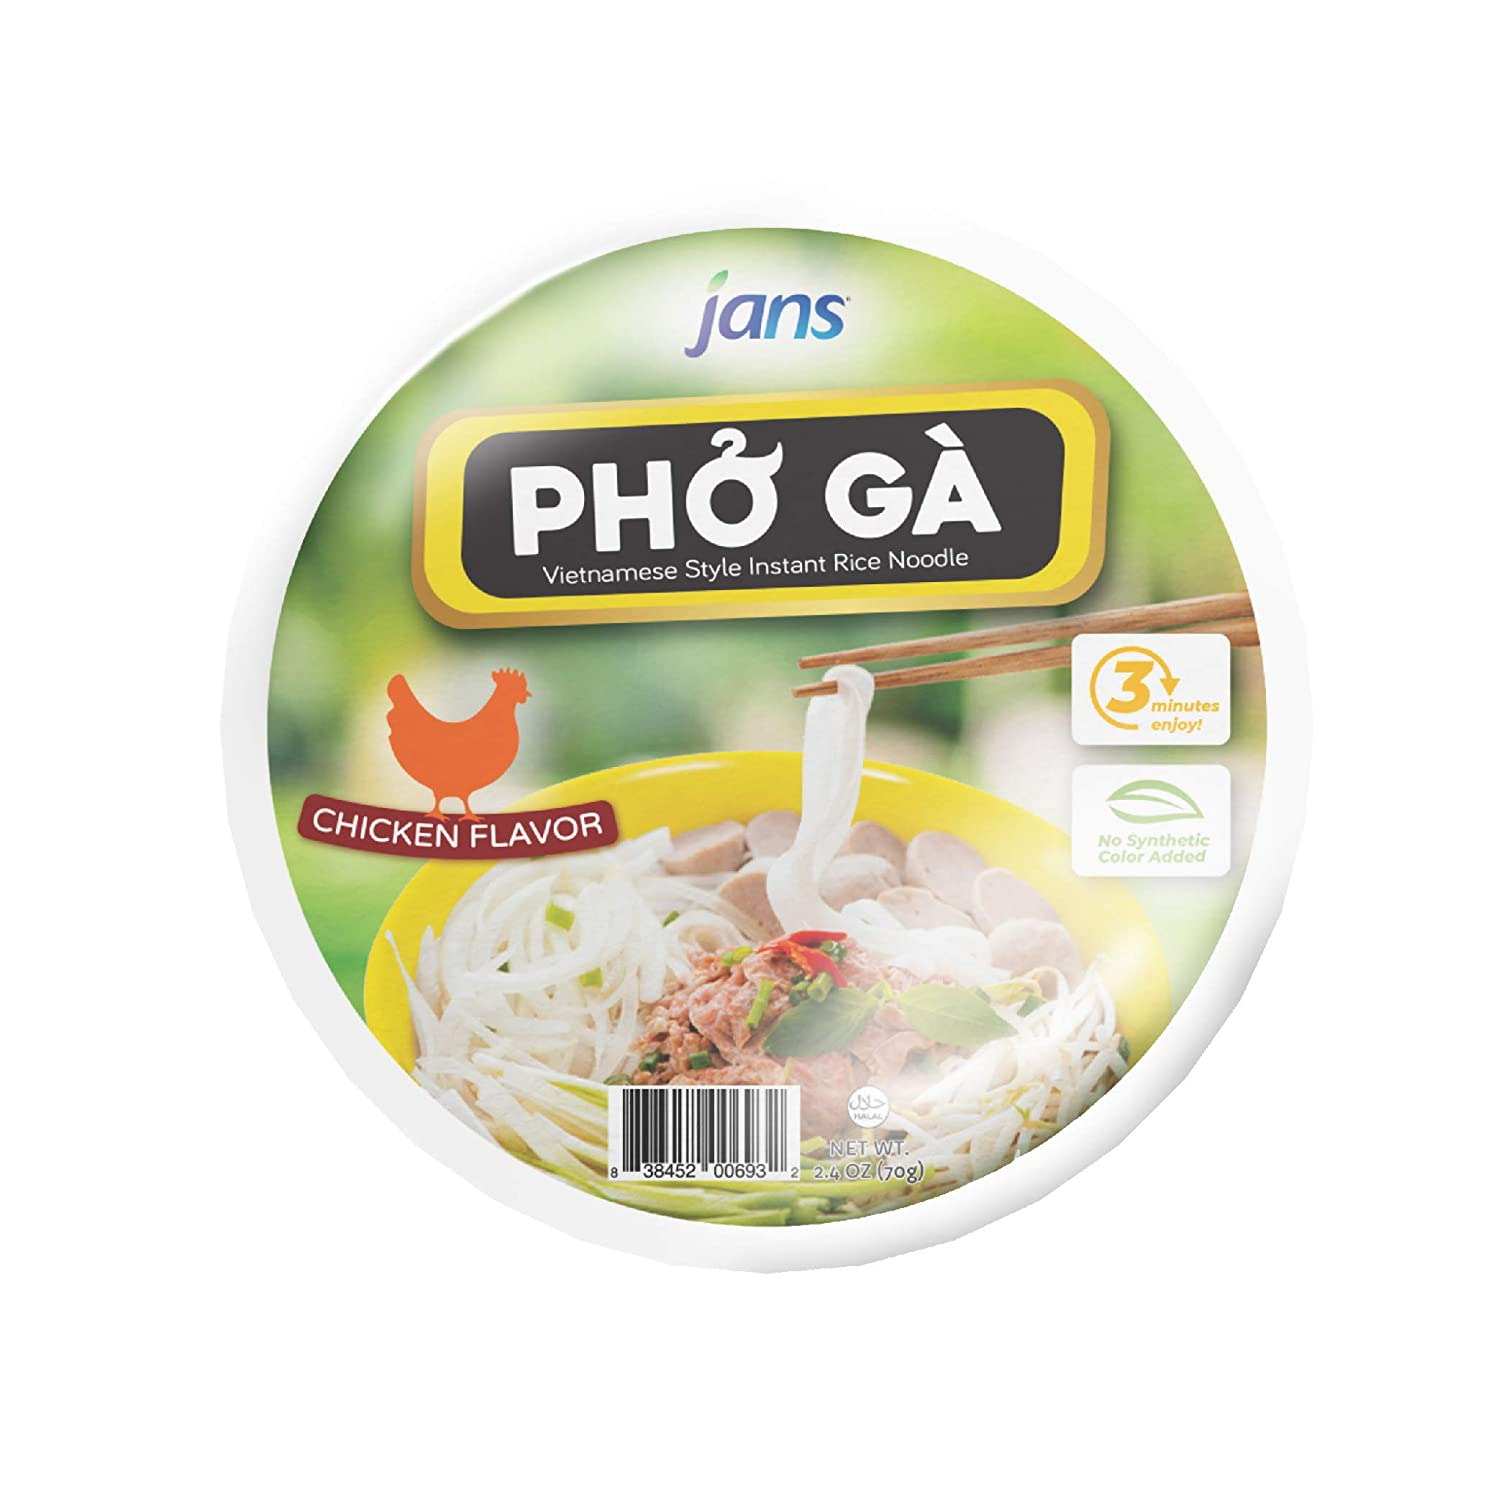 Jans Phở, Vietnamese Style Instant Rice Noodle, 2.4 oz (Chicken (Gà), Pack of 12)